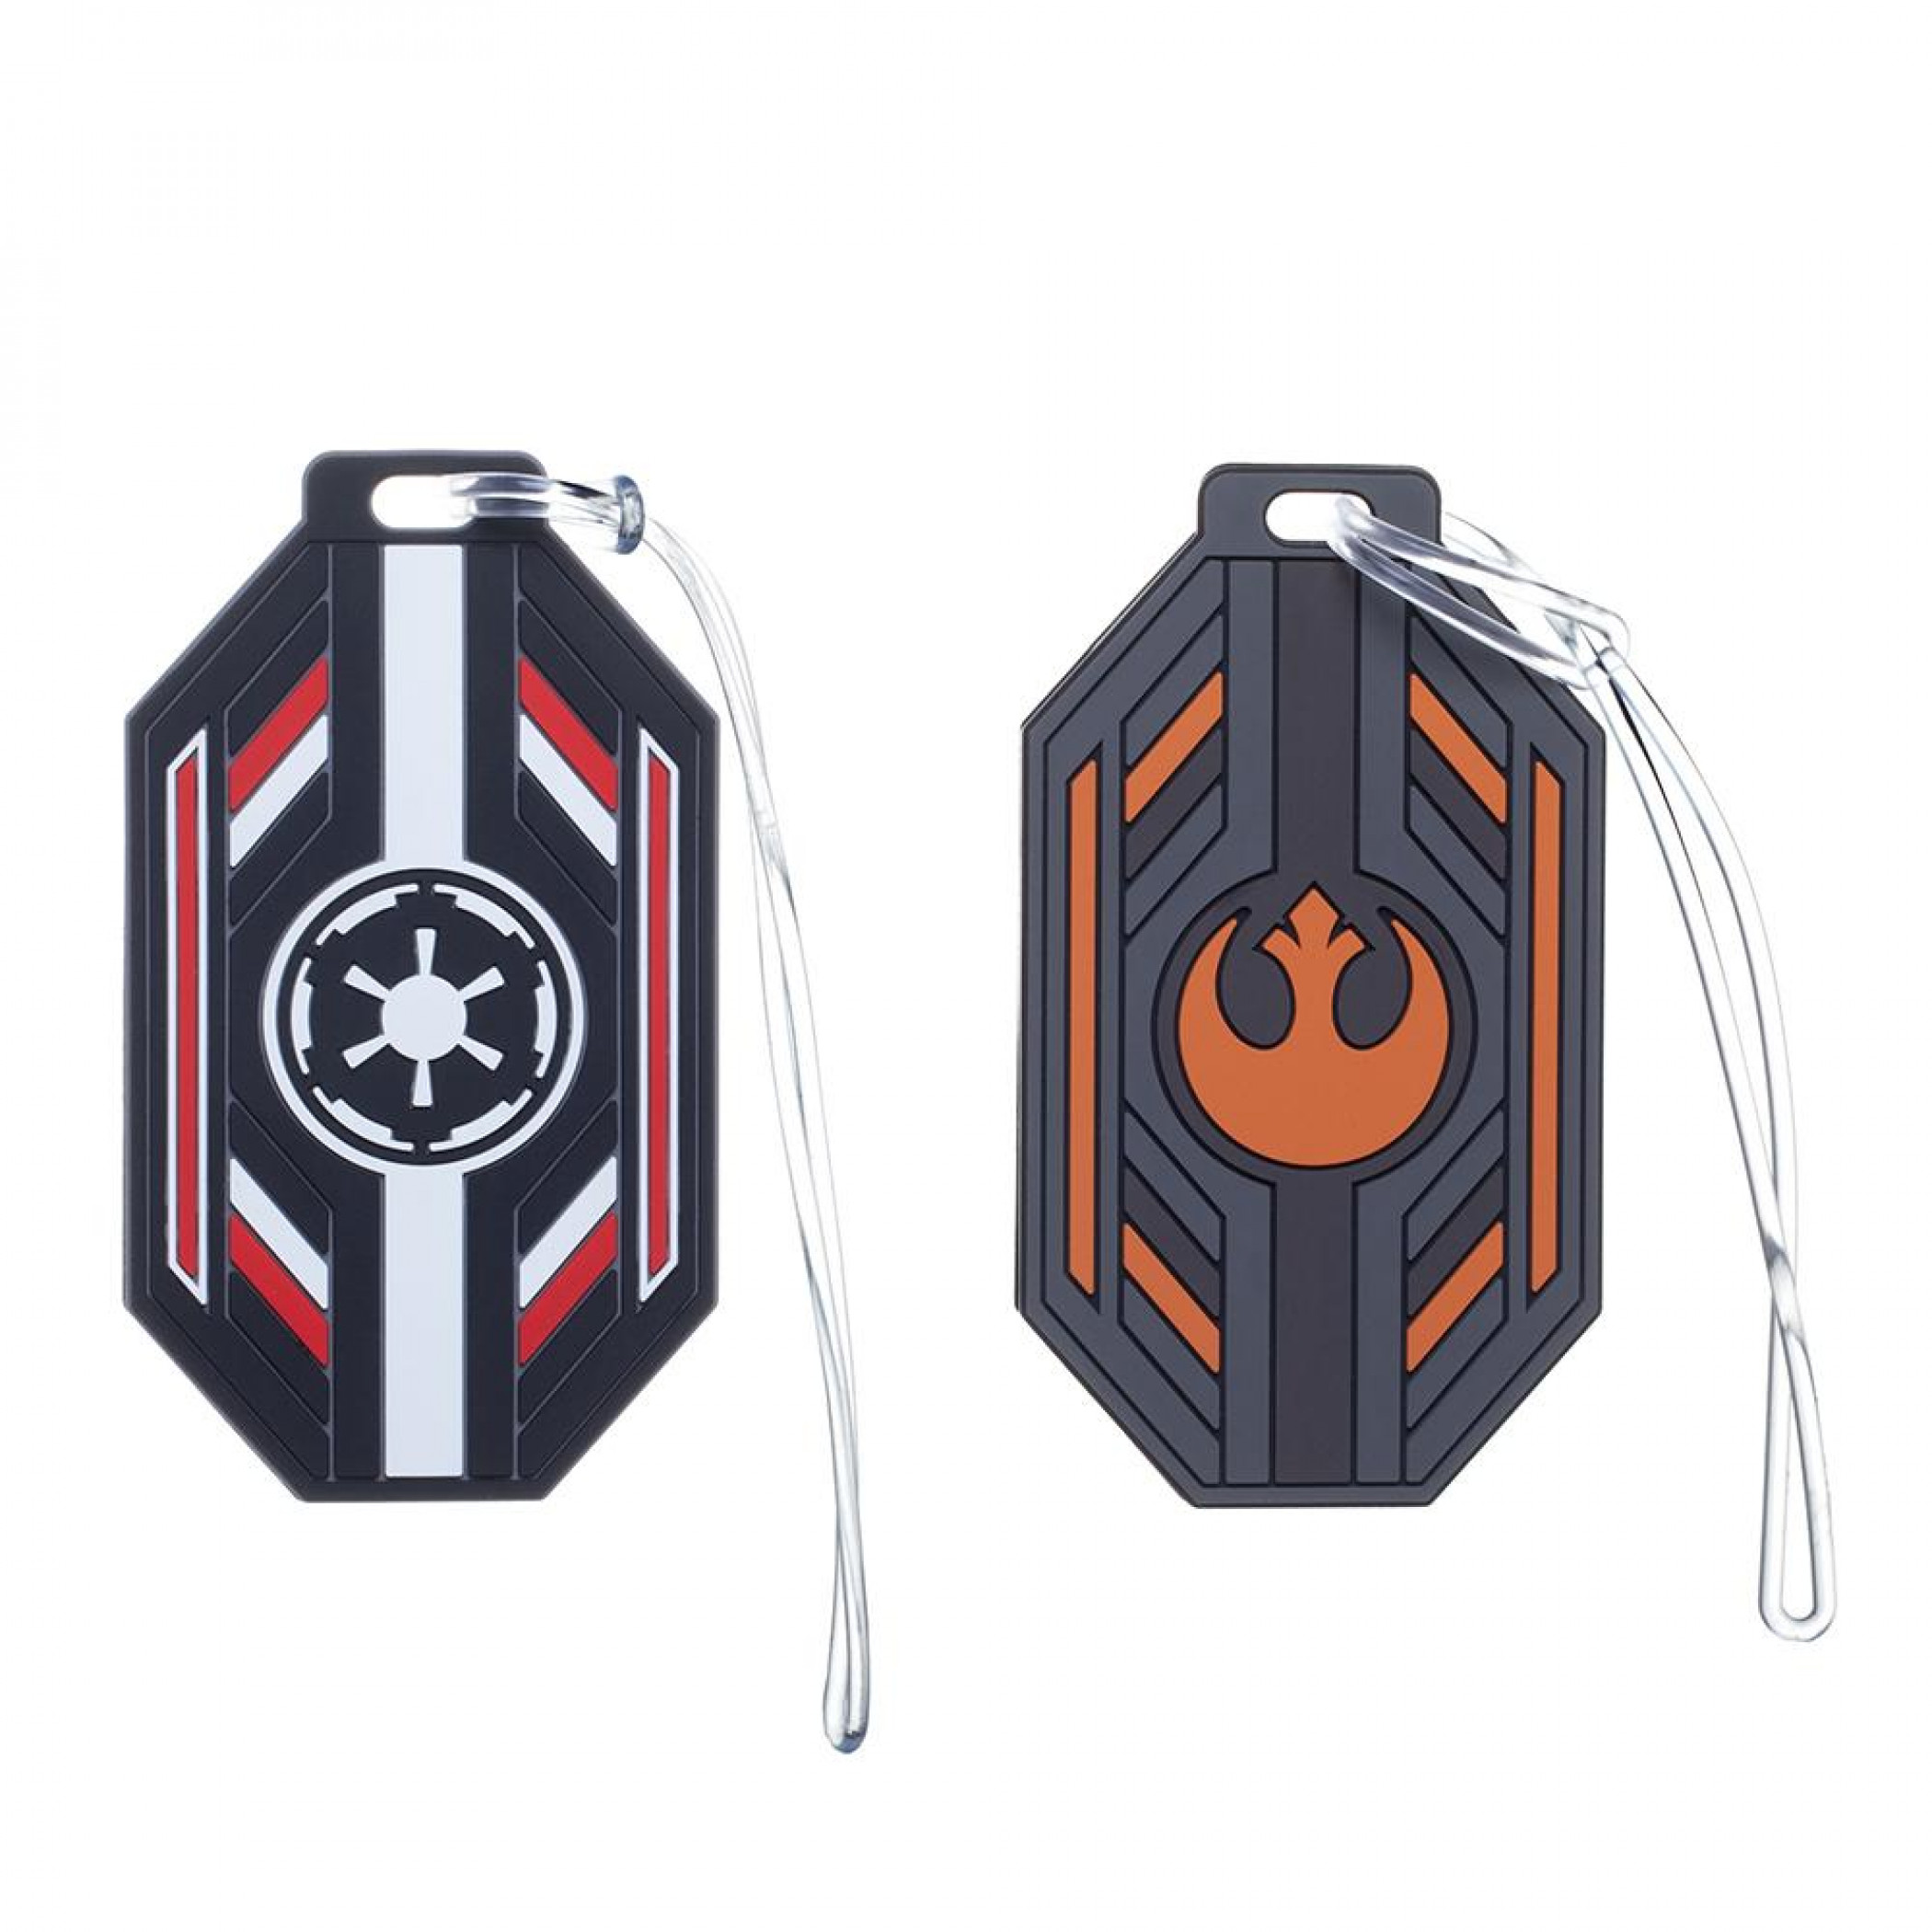 Star Wars Rebel and Empire Set of 2 Luggage Tags